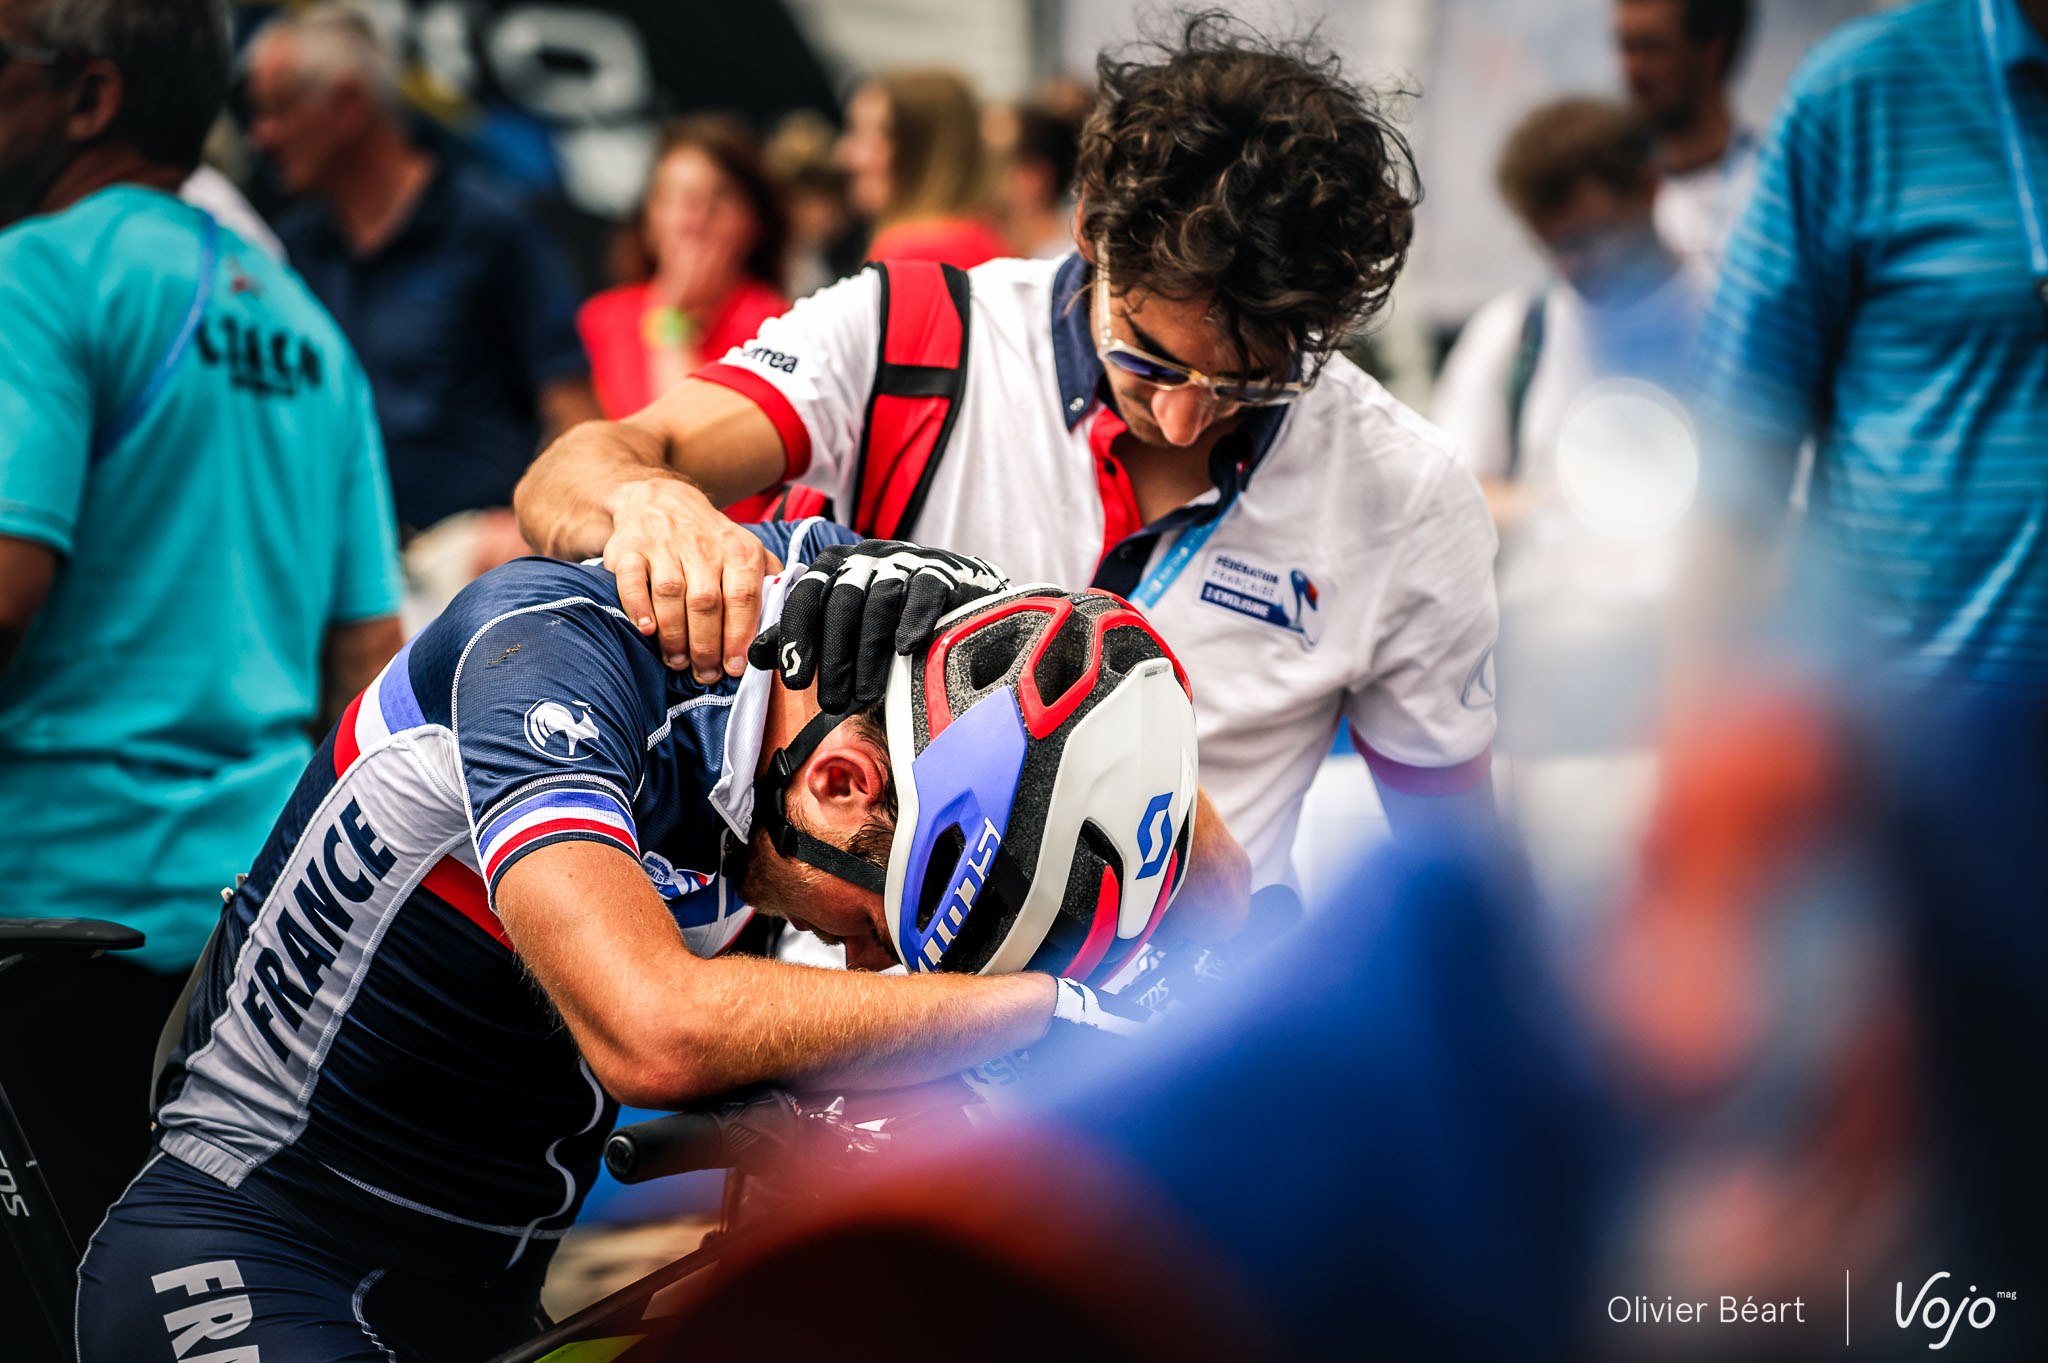 Nove_Mesto_Worlds_2016_U23_Men_Koretzky_Gaze_Copyright_OBeart_VojoMag-56